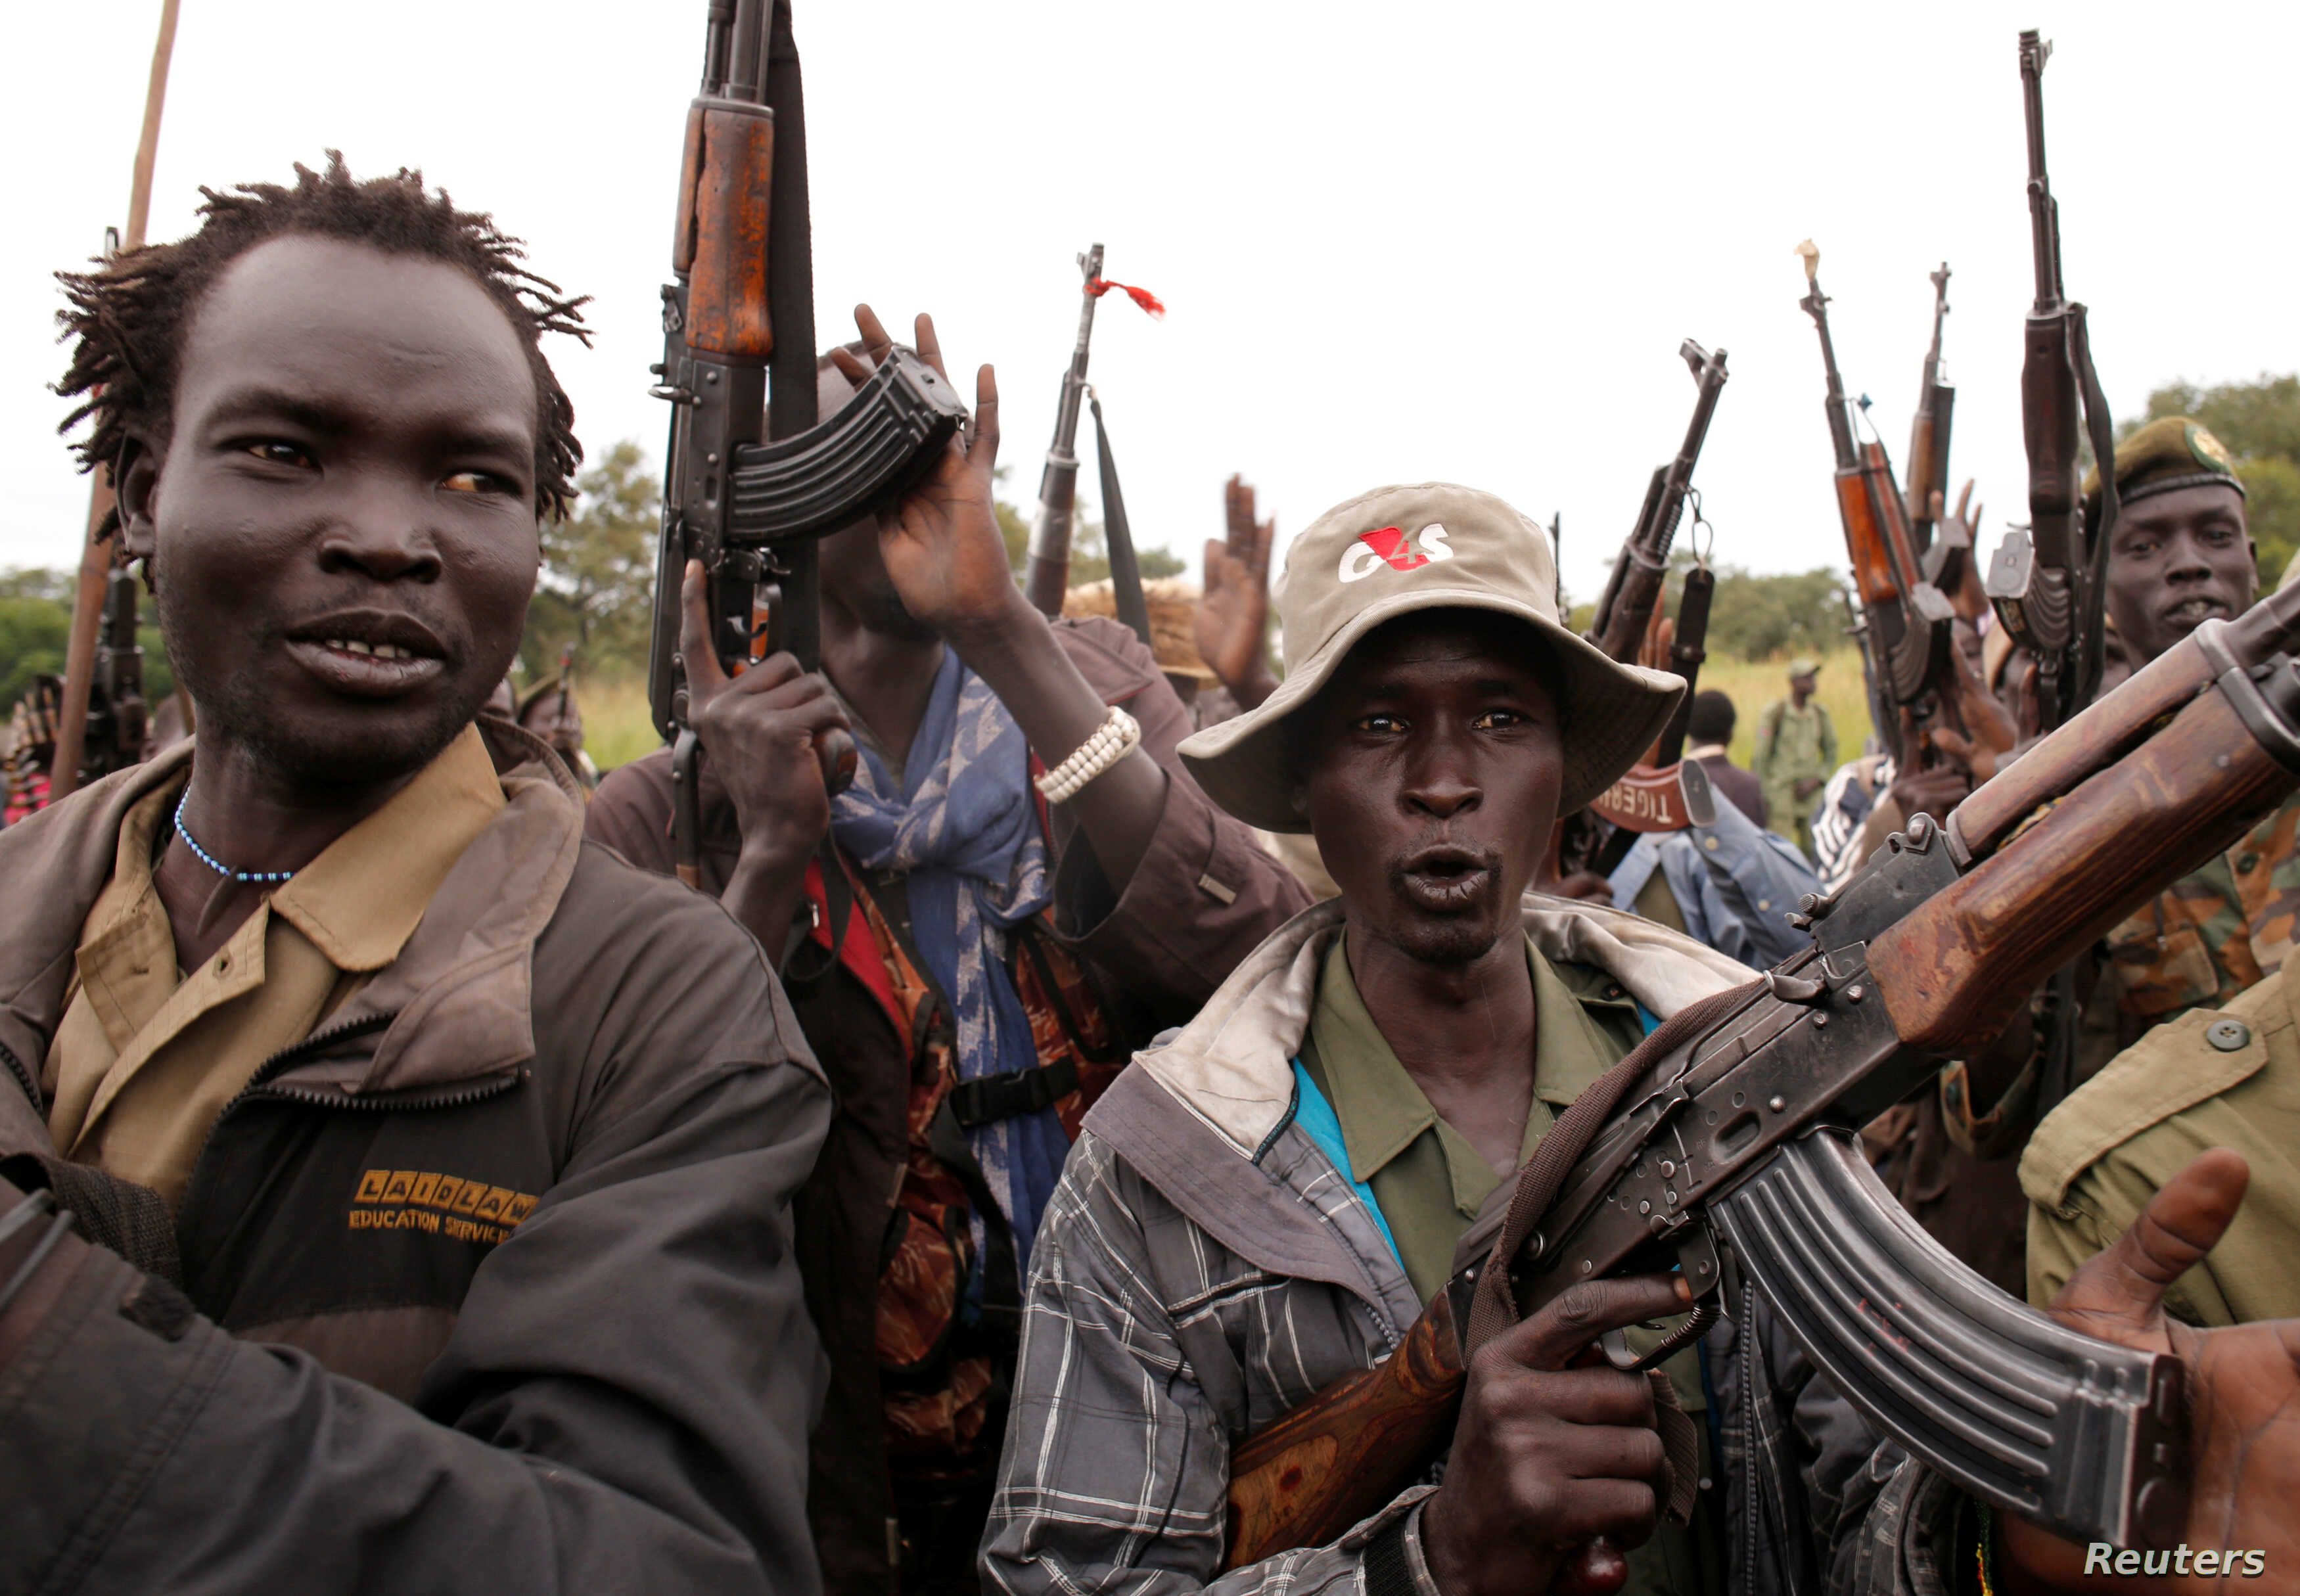 At least 100 civilians killed in South Sudan after peace deal